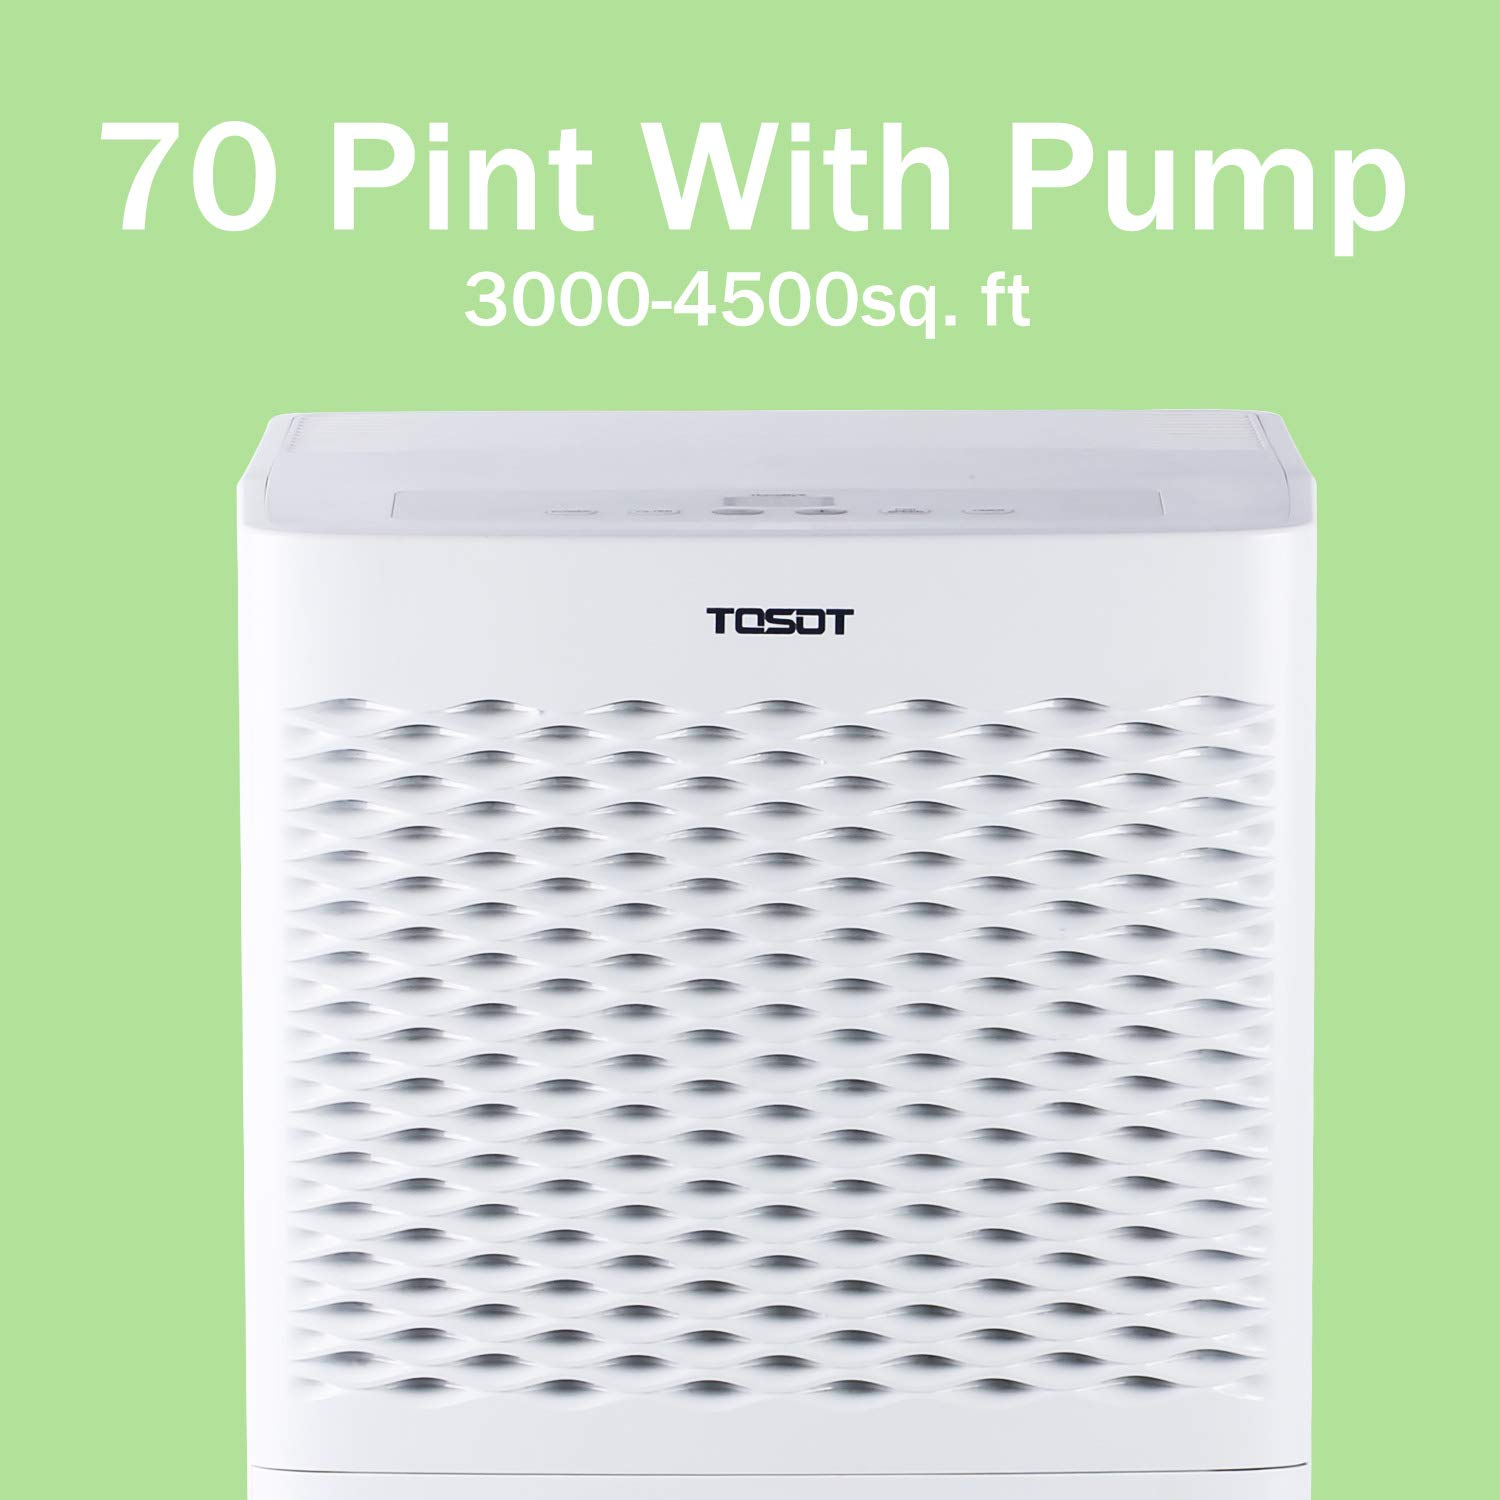 TOSOT 70 Pint Dehumidifier with Pump for Large Rooms up to 4500 Square feet – Energy Star, Quiet, Portable with Wheels, and Internal Pump Drain – Dehumidifiers for Home, Basement, Bedroom, Bathroom